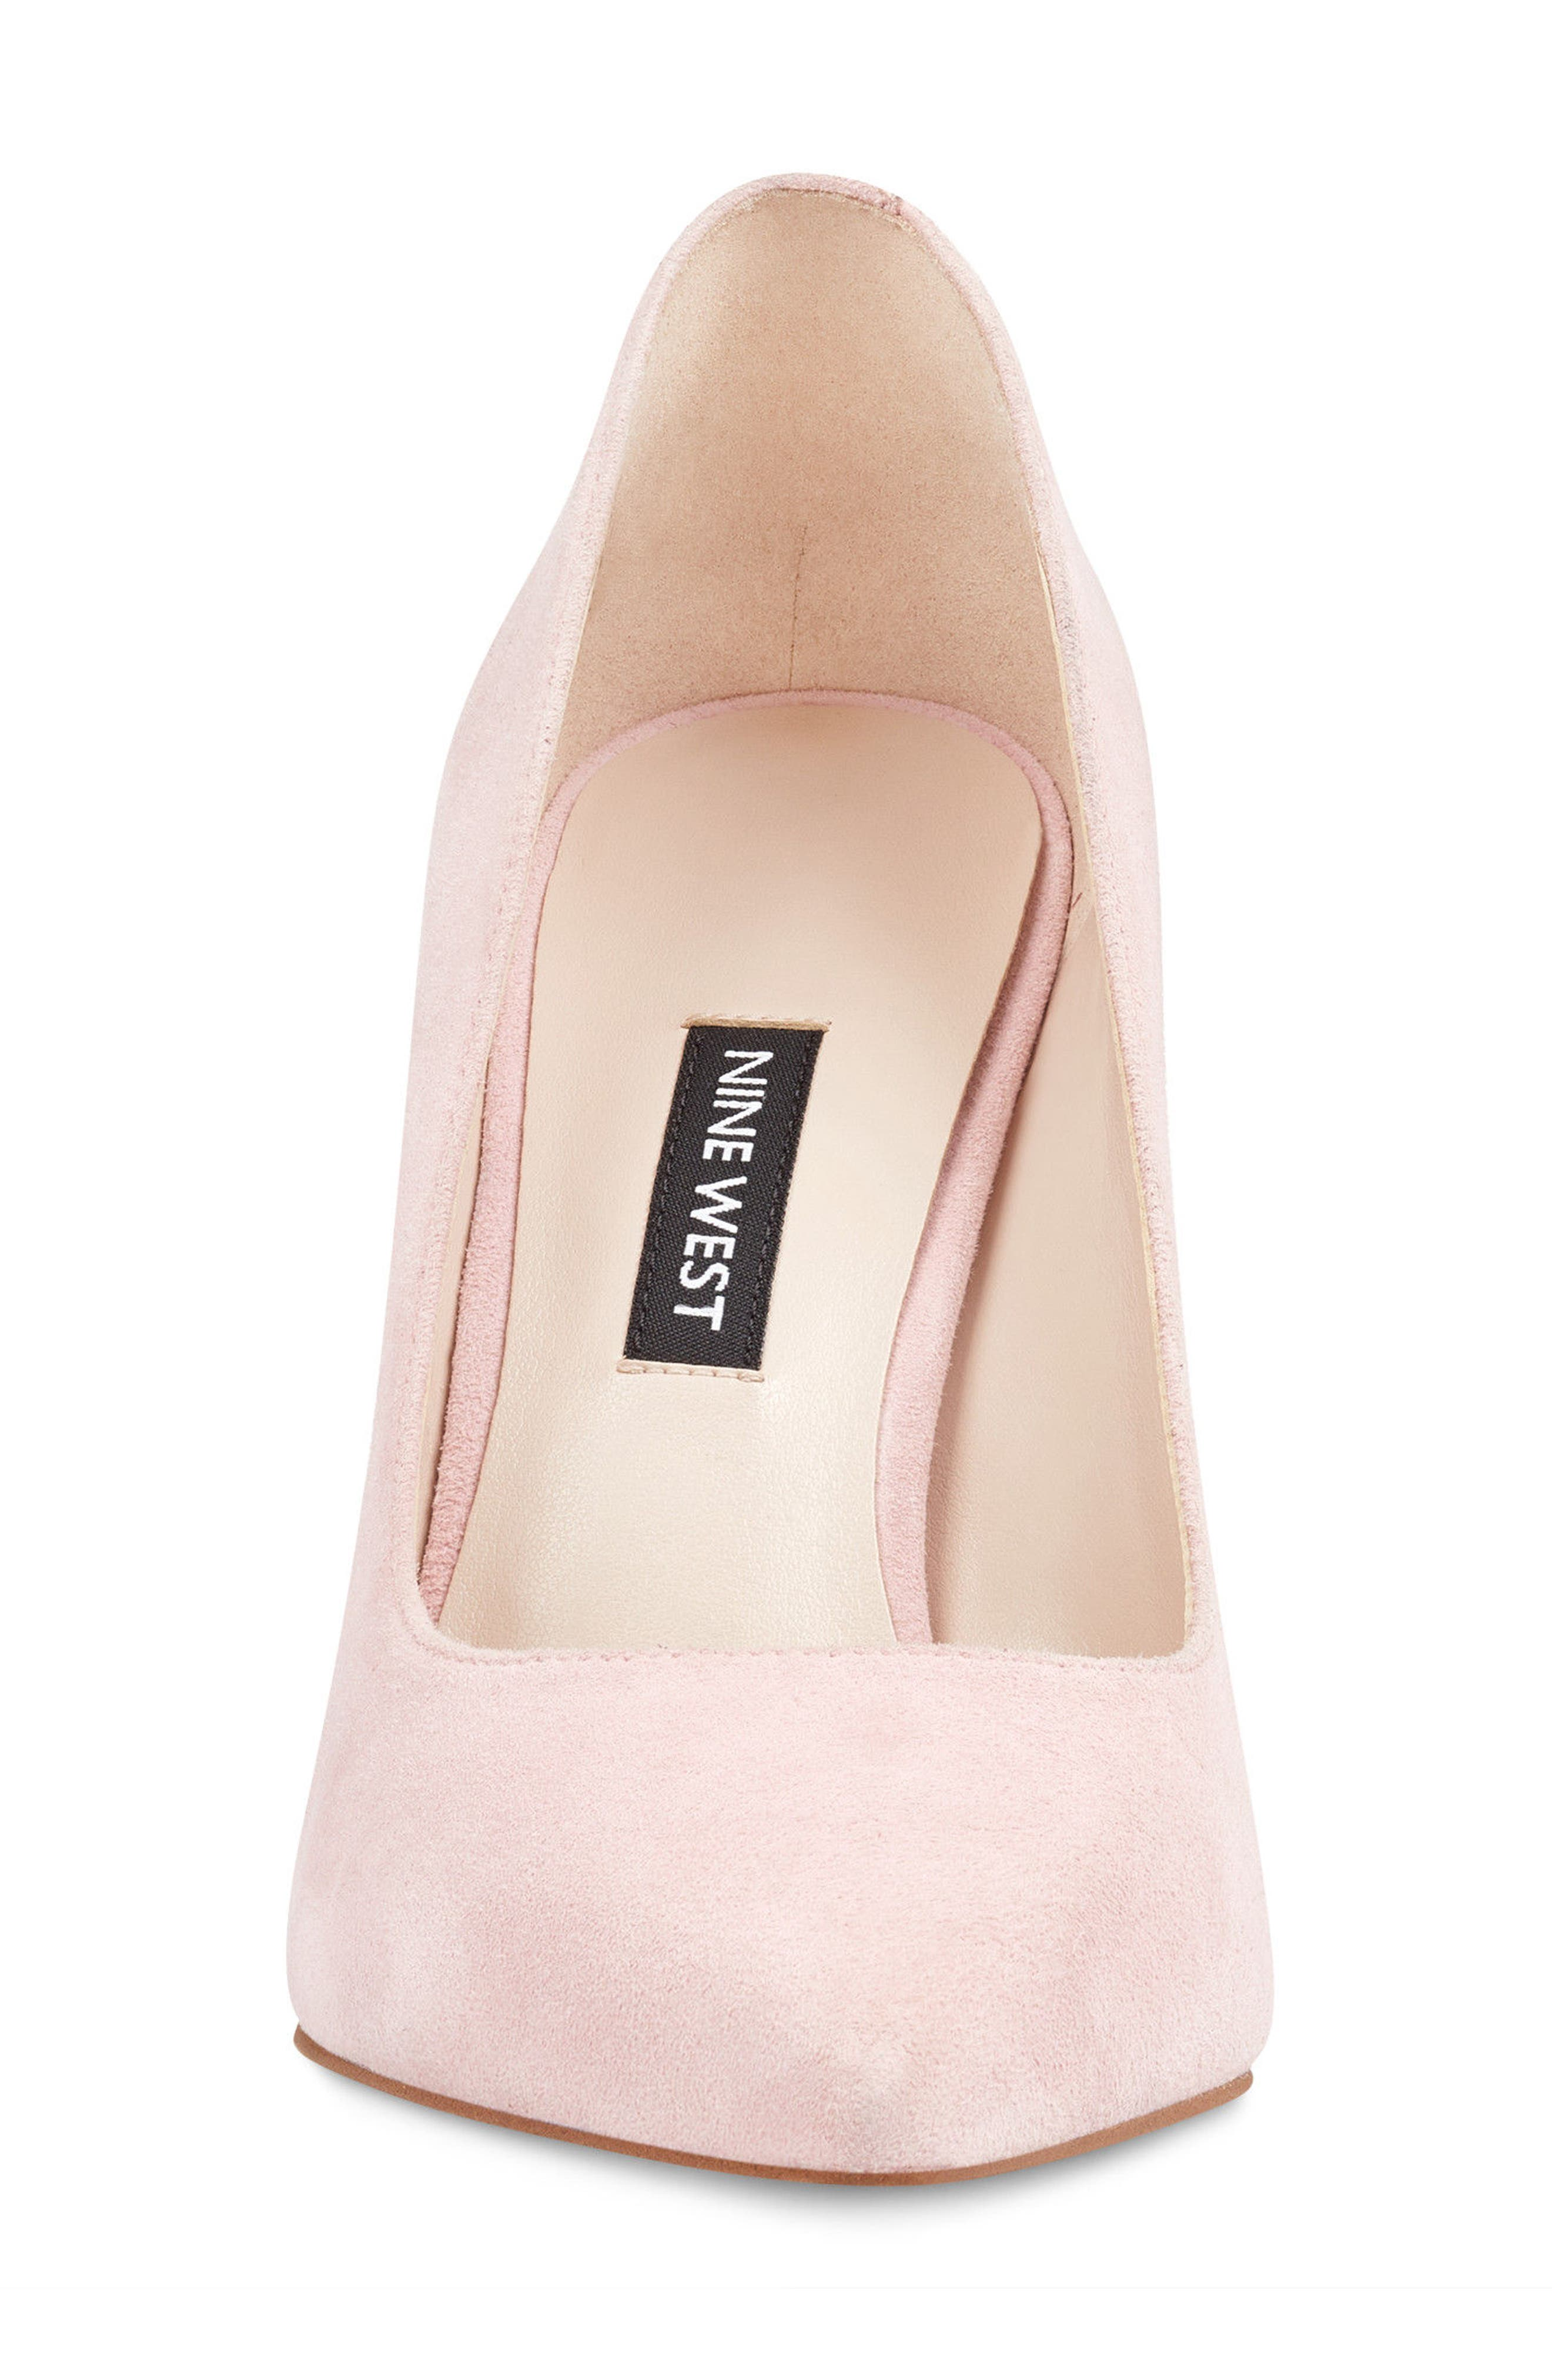 'Tatiana' Pointy Toe Pump,                             Alternate thumbnail 4, color,                             LIGHT PINK SUEDE